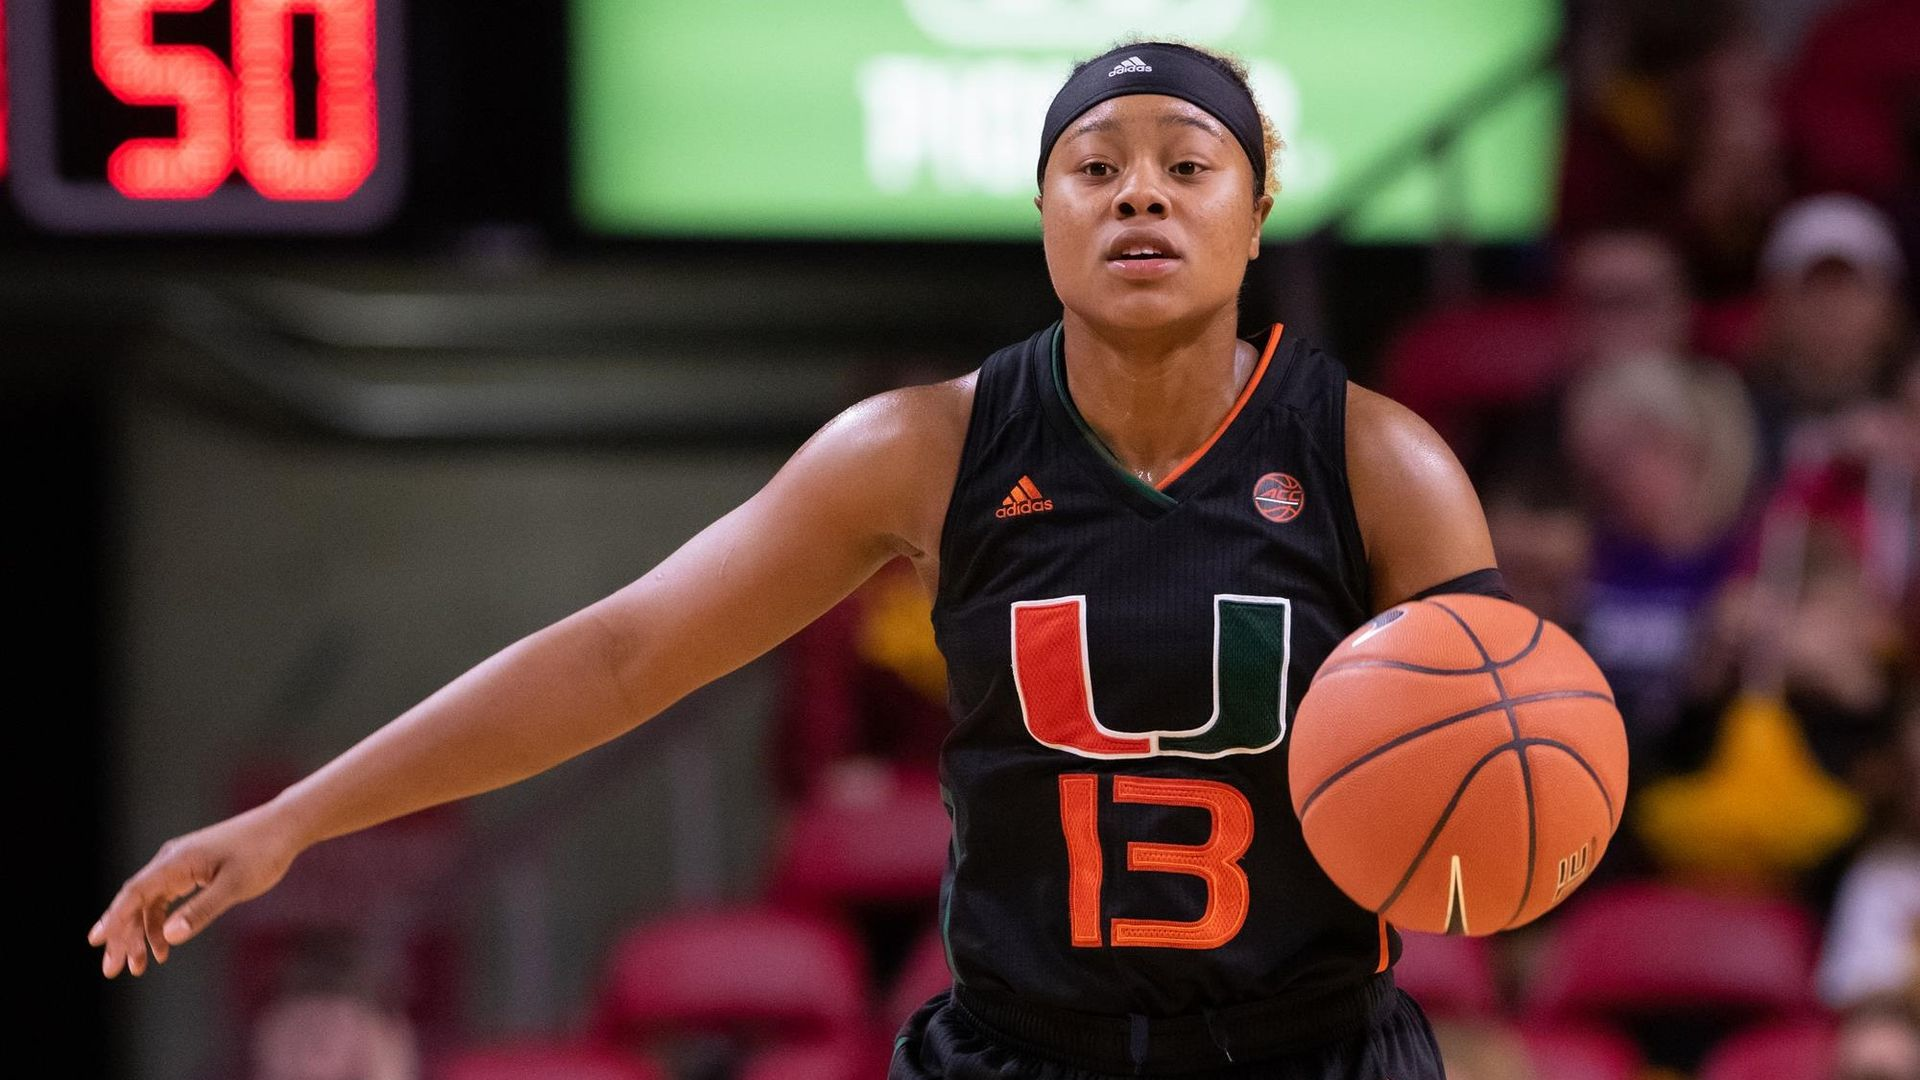 WBB Stays No. 23 in Coaches Poll